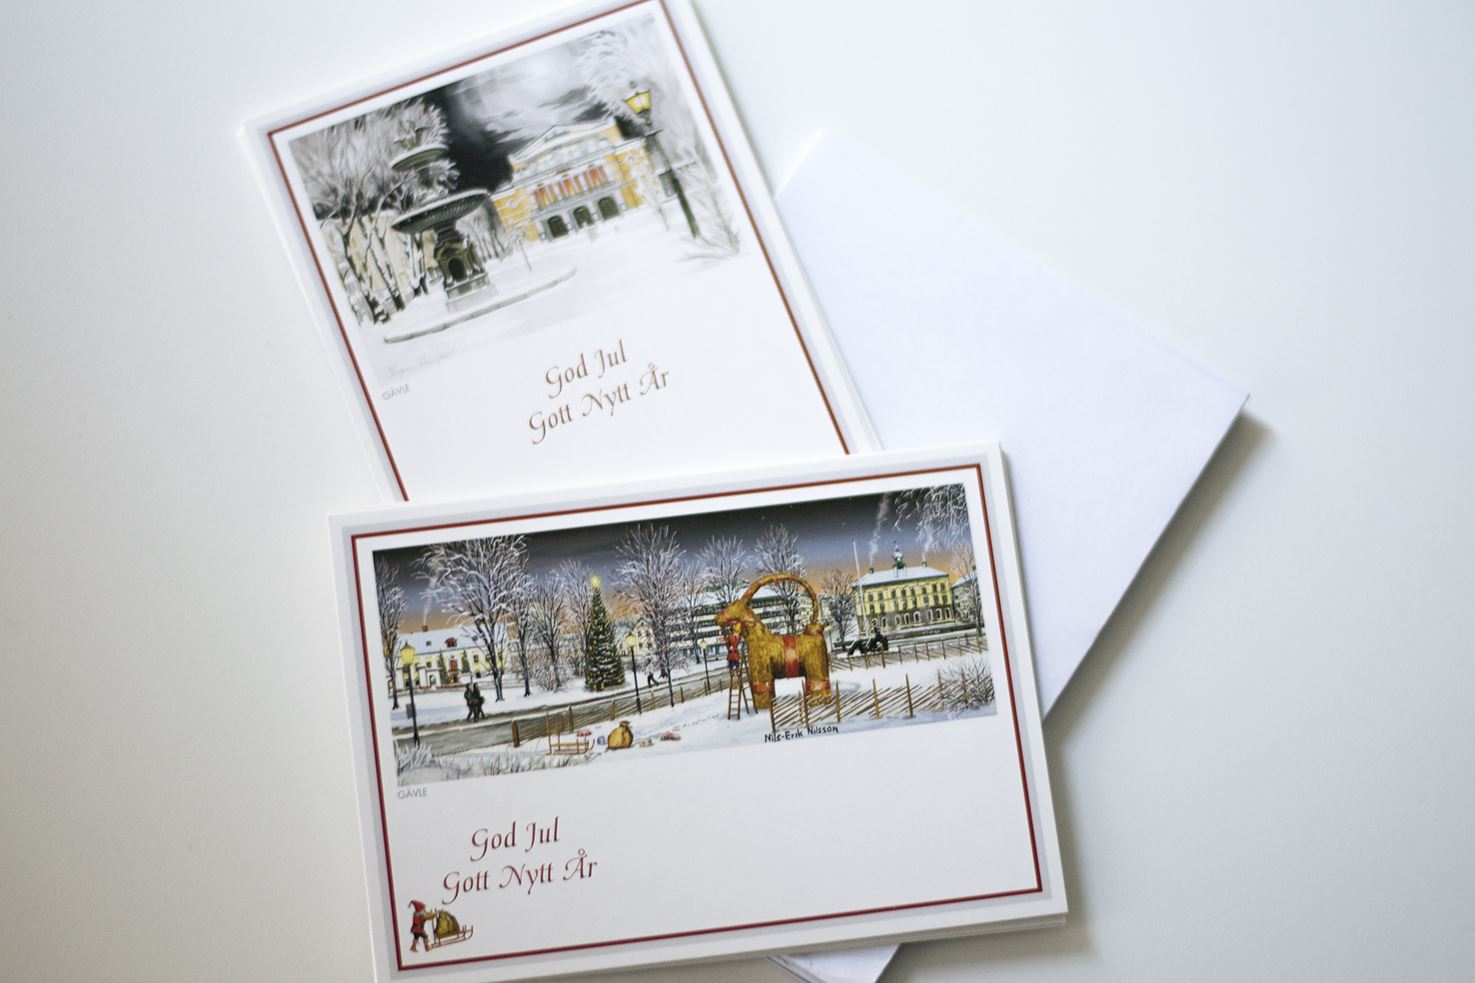 Christmas cards from Gävle